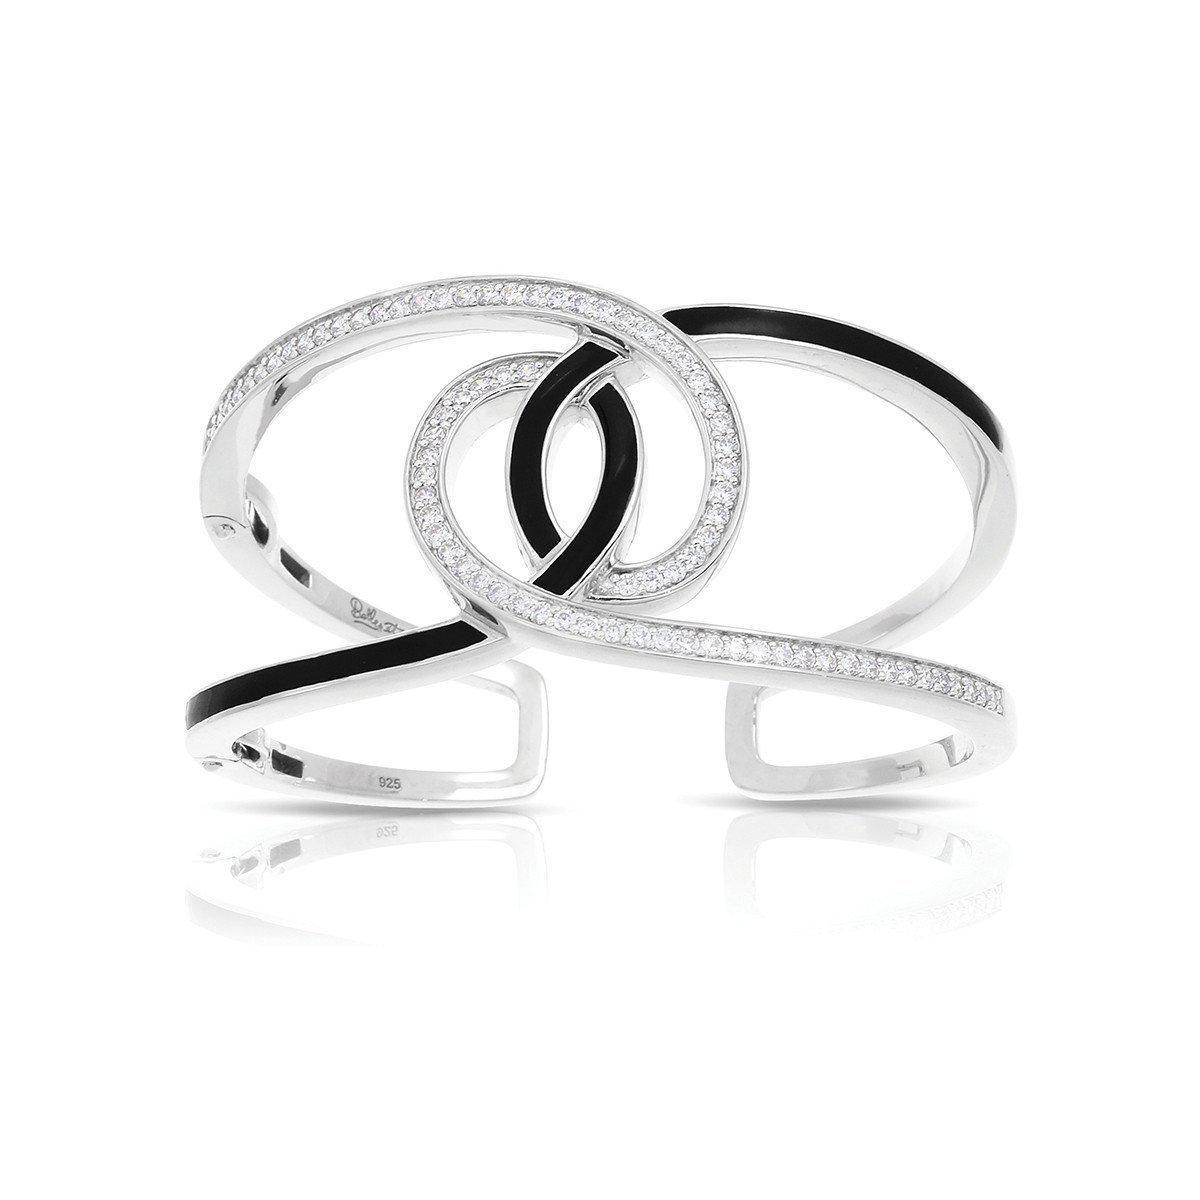 Evermore Bangle by Belle Etoile